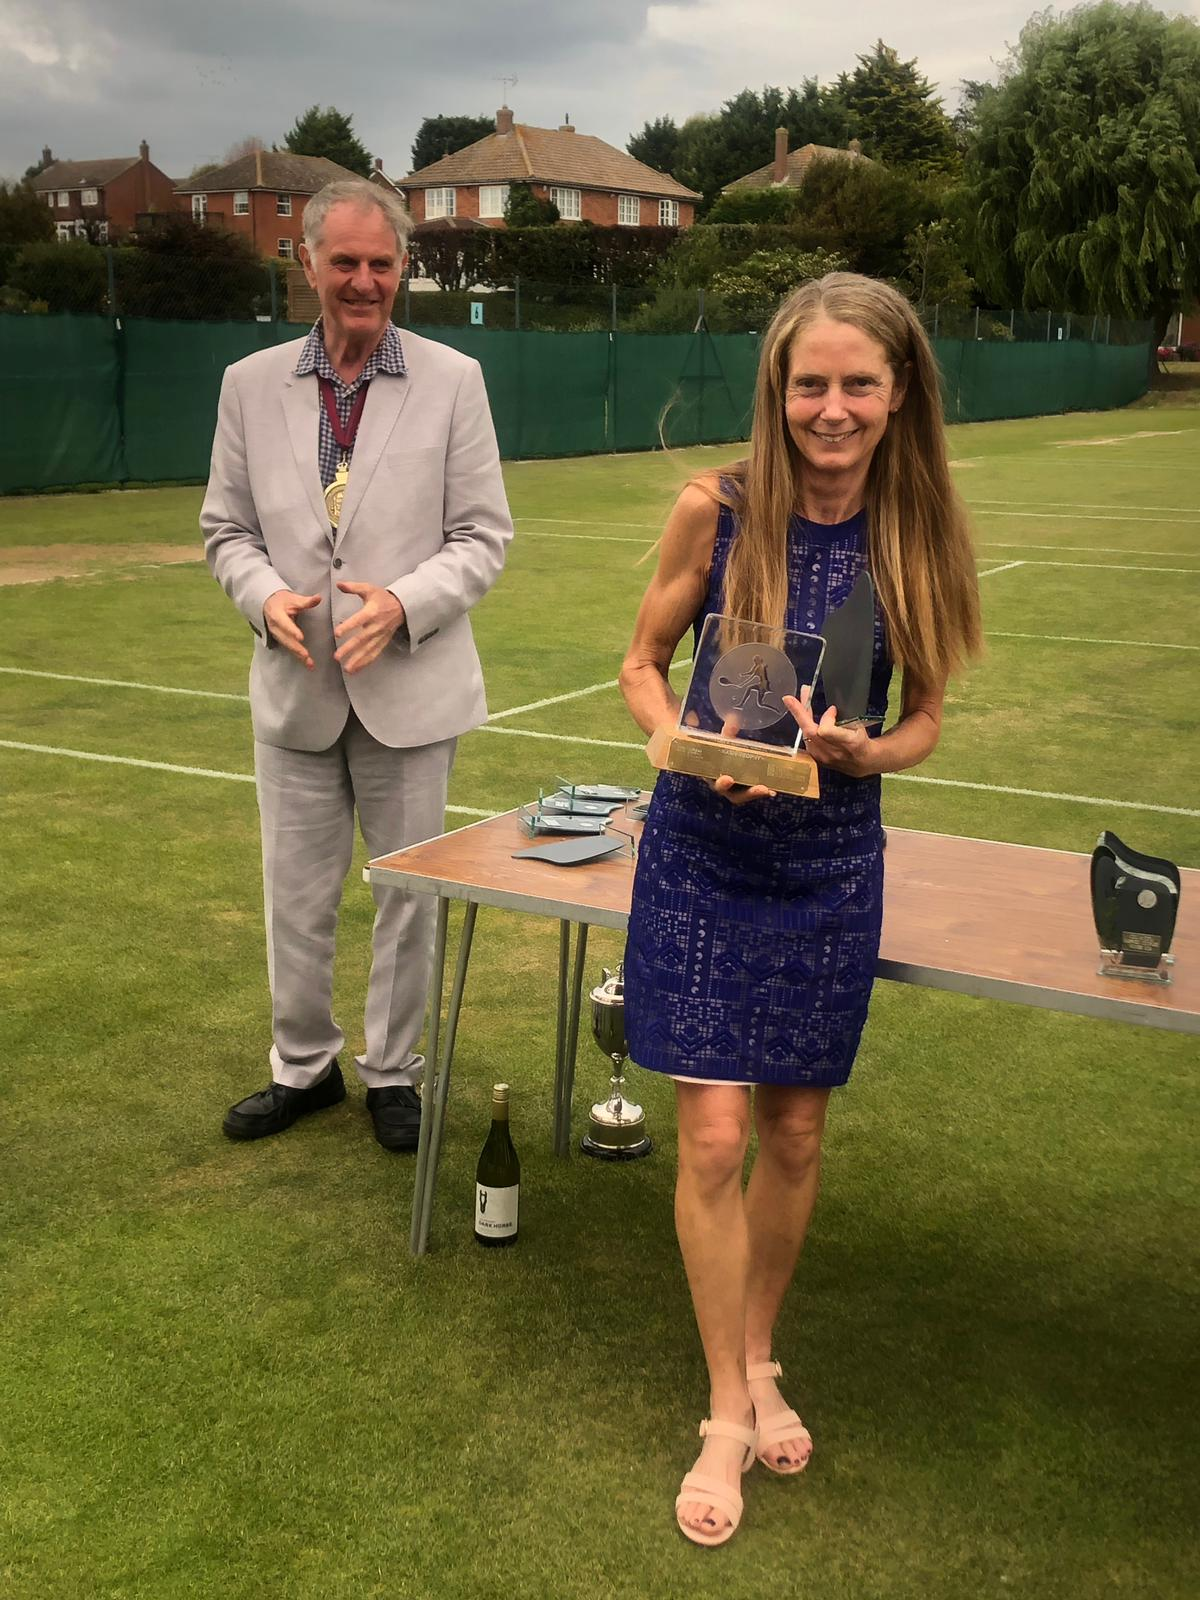 Lynn received flowers for organising and running the tournament draw and then winning the 40 and Over Ladies Singles trophy